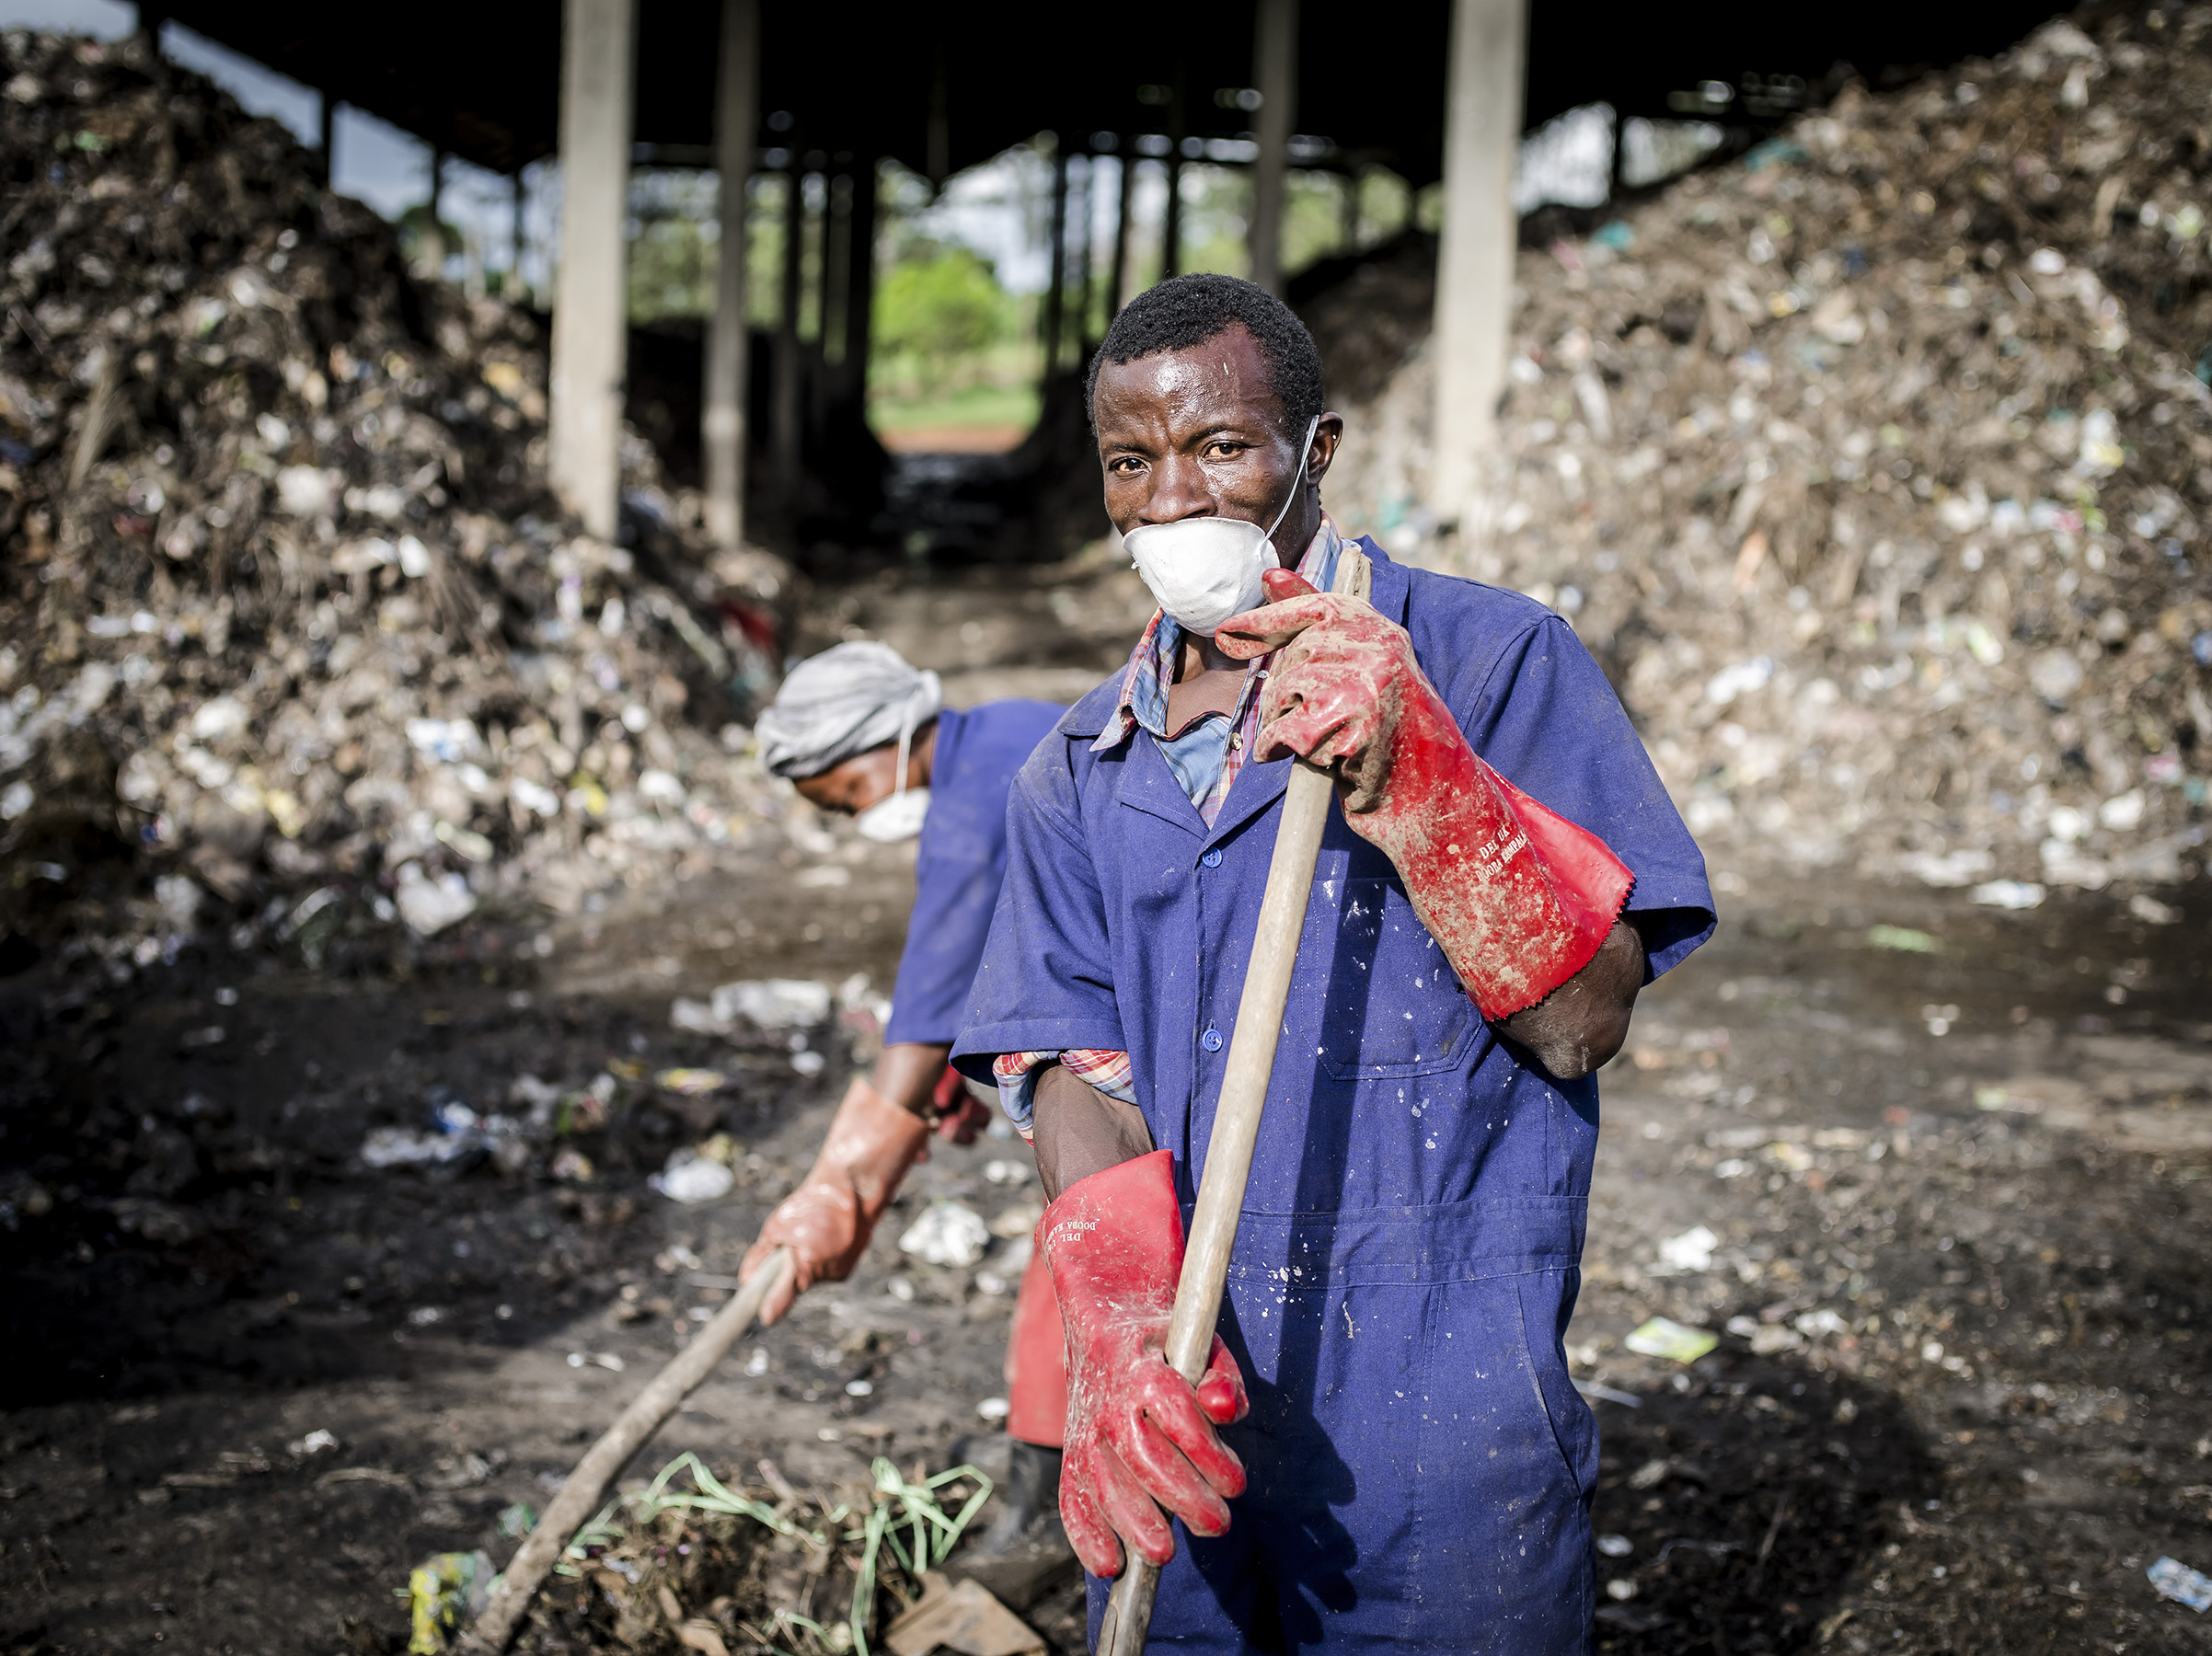 Workers form Katikolo composting plant.